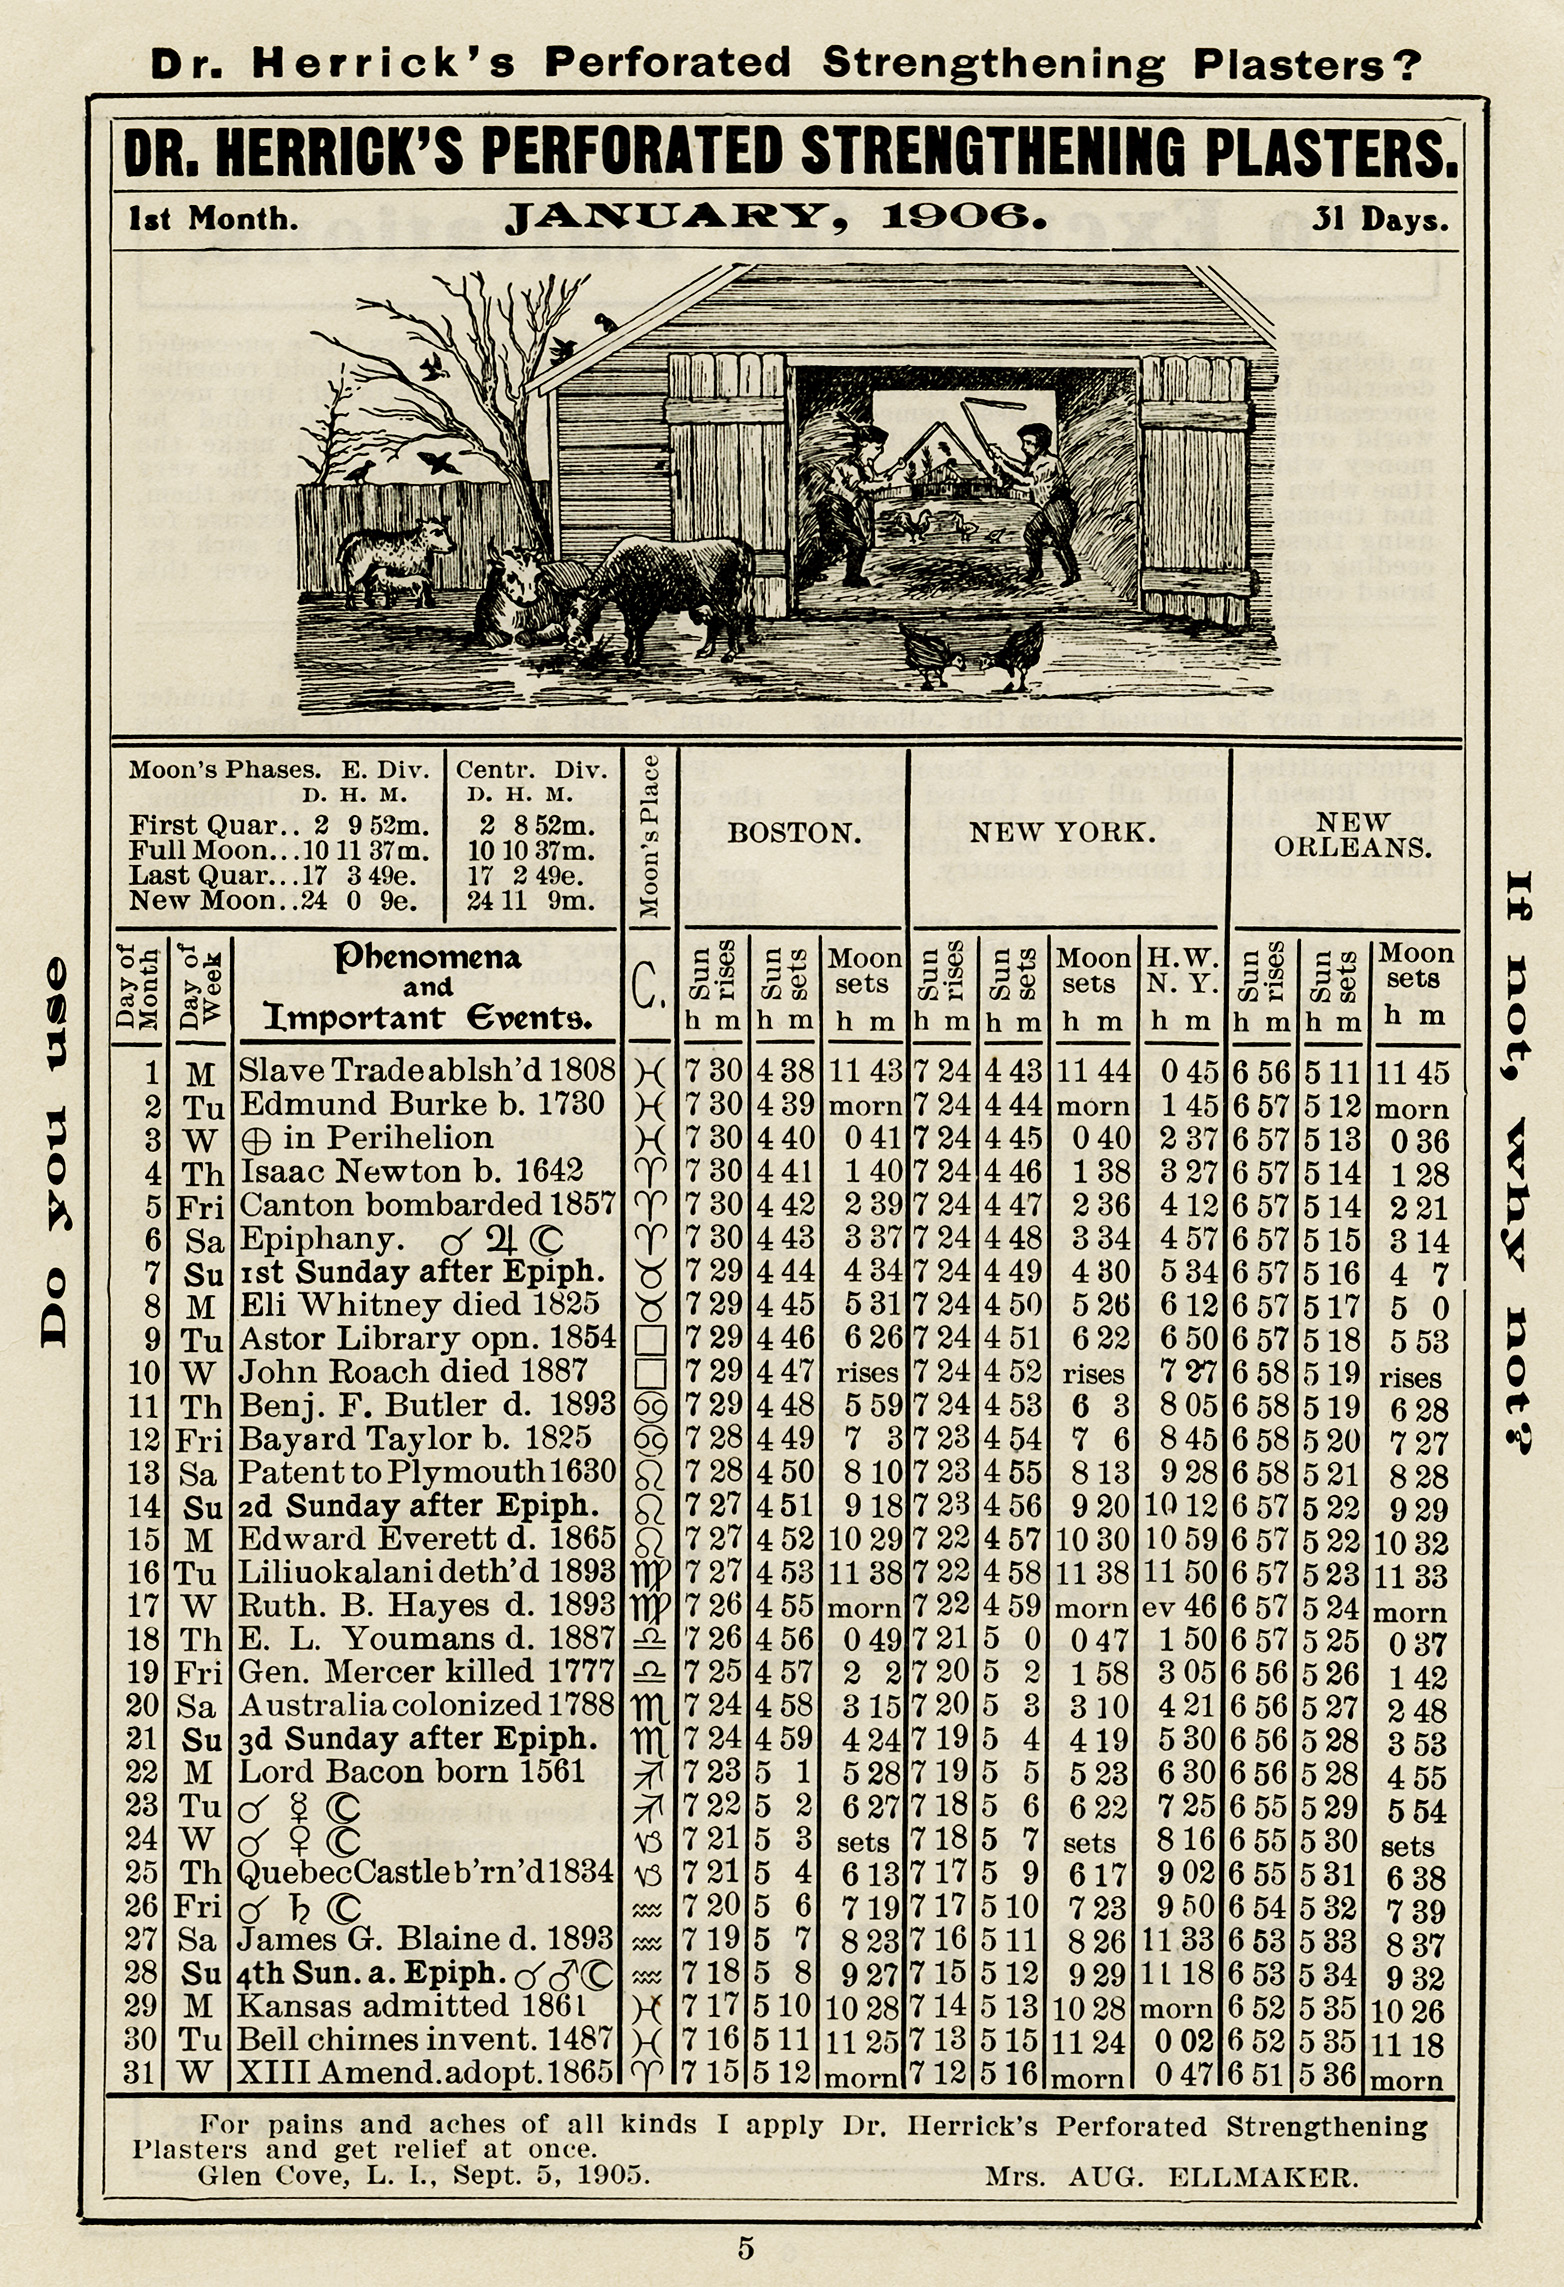 herrick almanac January 1906, important events 1906, free vintage almanac graphic, old book page